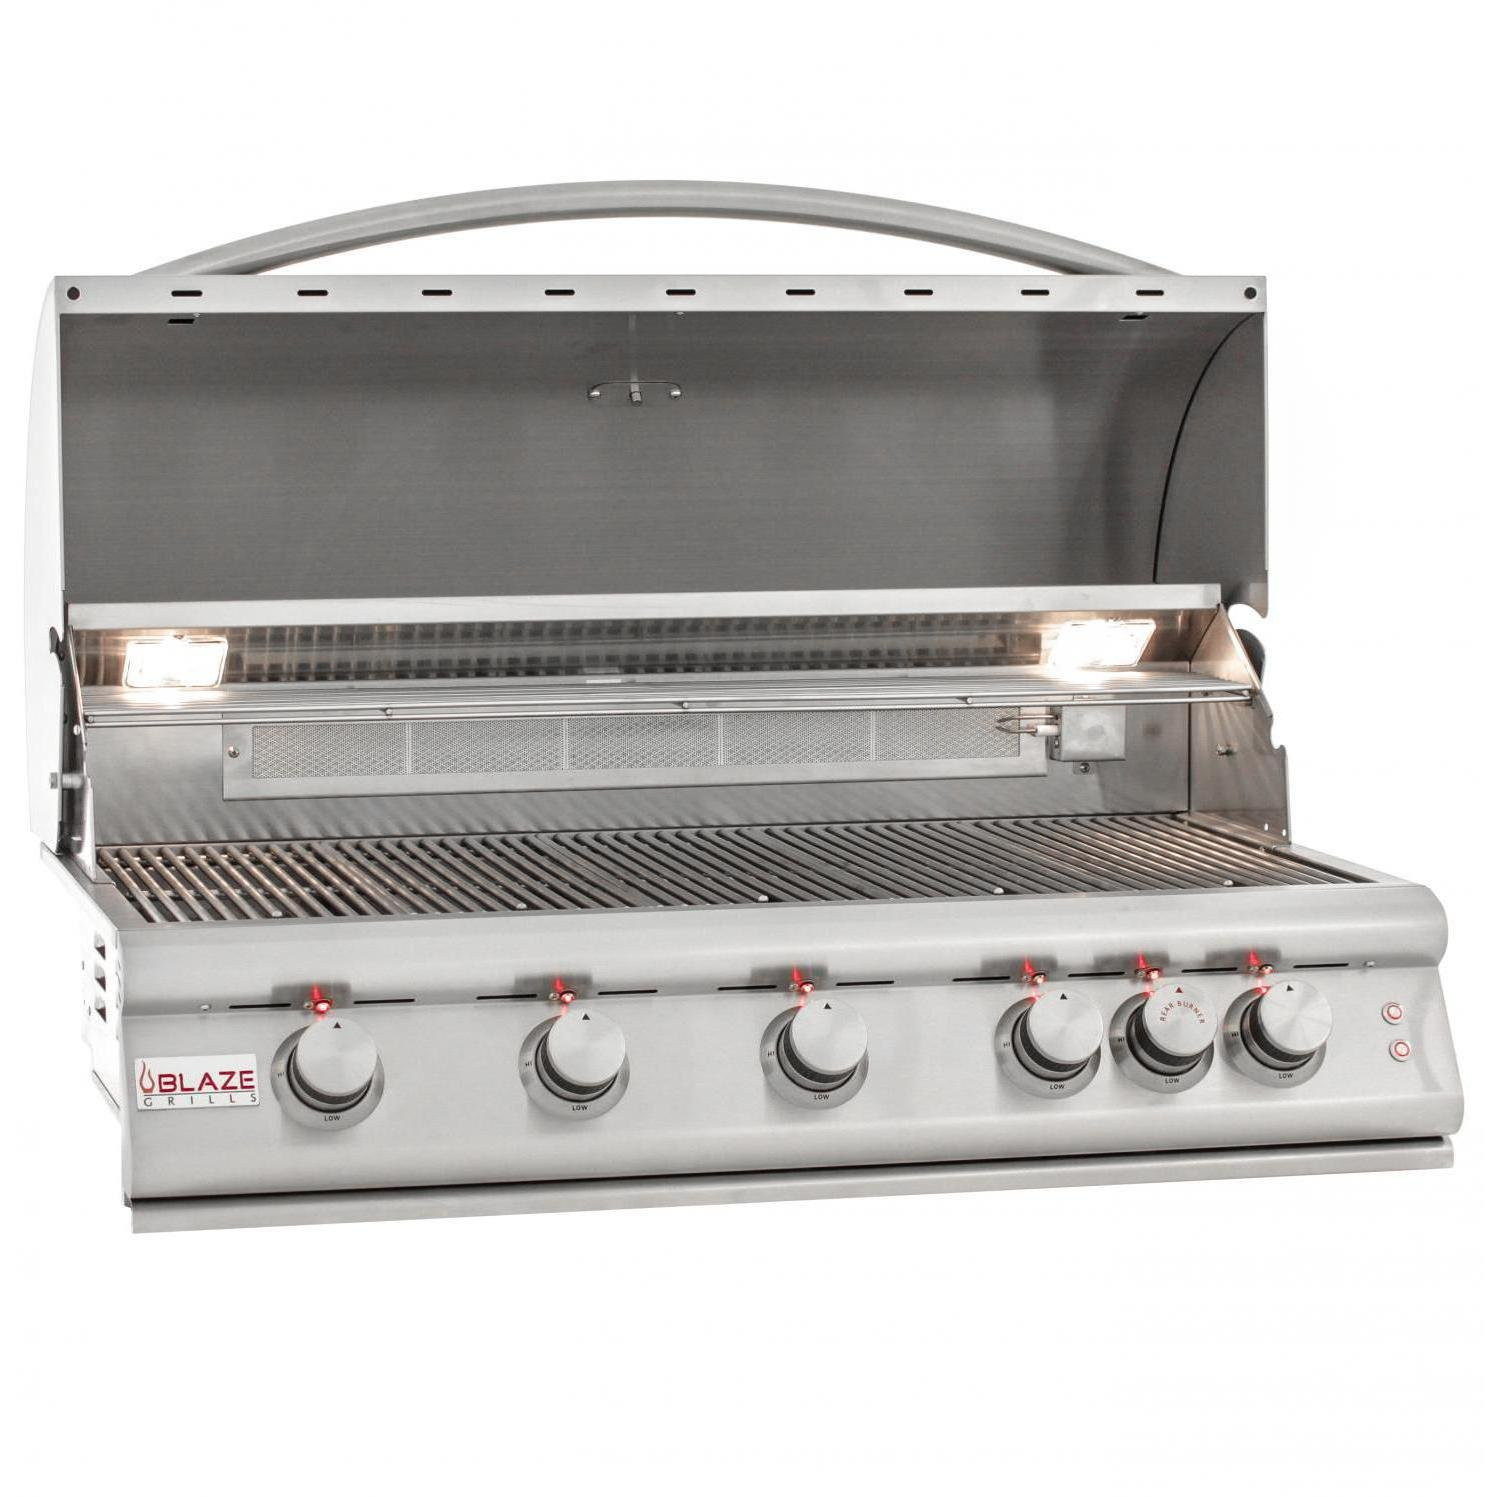 Blaze Lte 40-inch 5-burner Built-in Propane Gas Grill With Rear Infrared Burner & Grill Lights - Blz-5lte2-lp by Blaze Outdoor Products